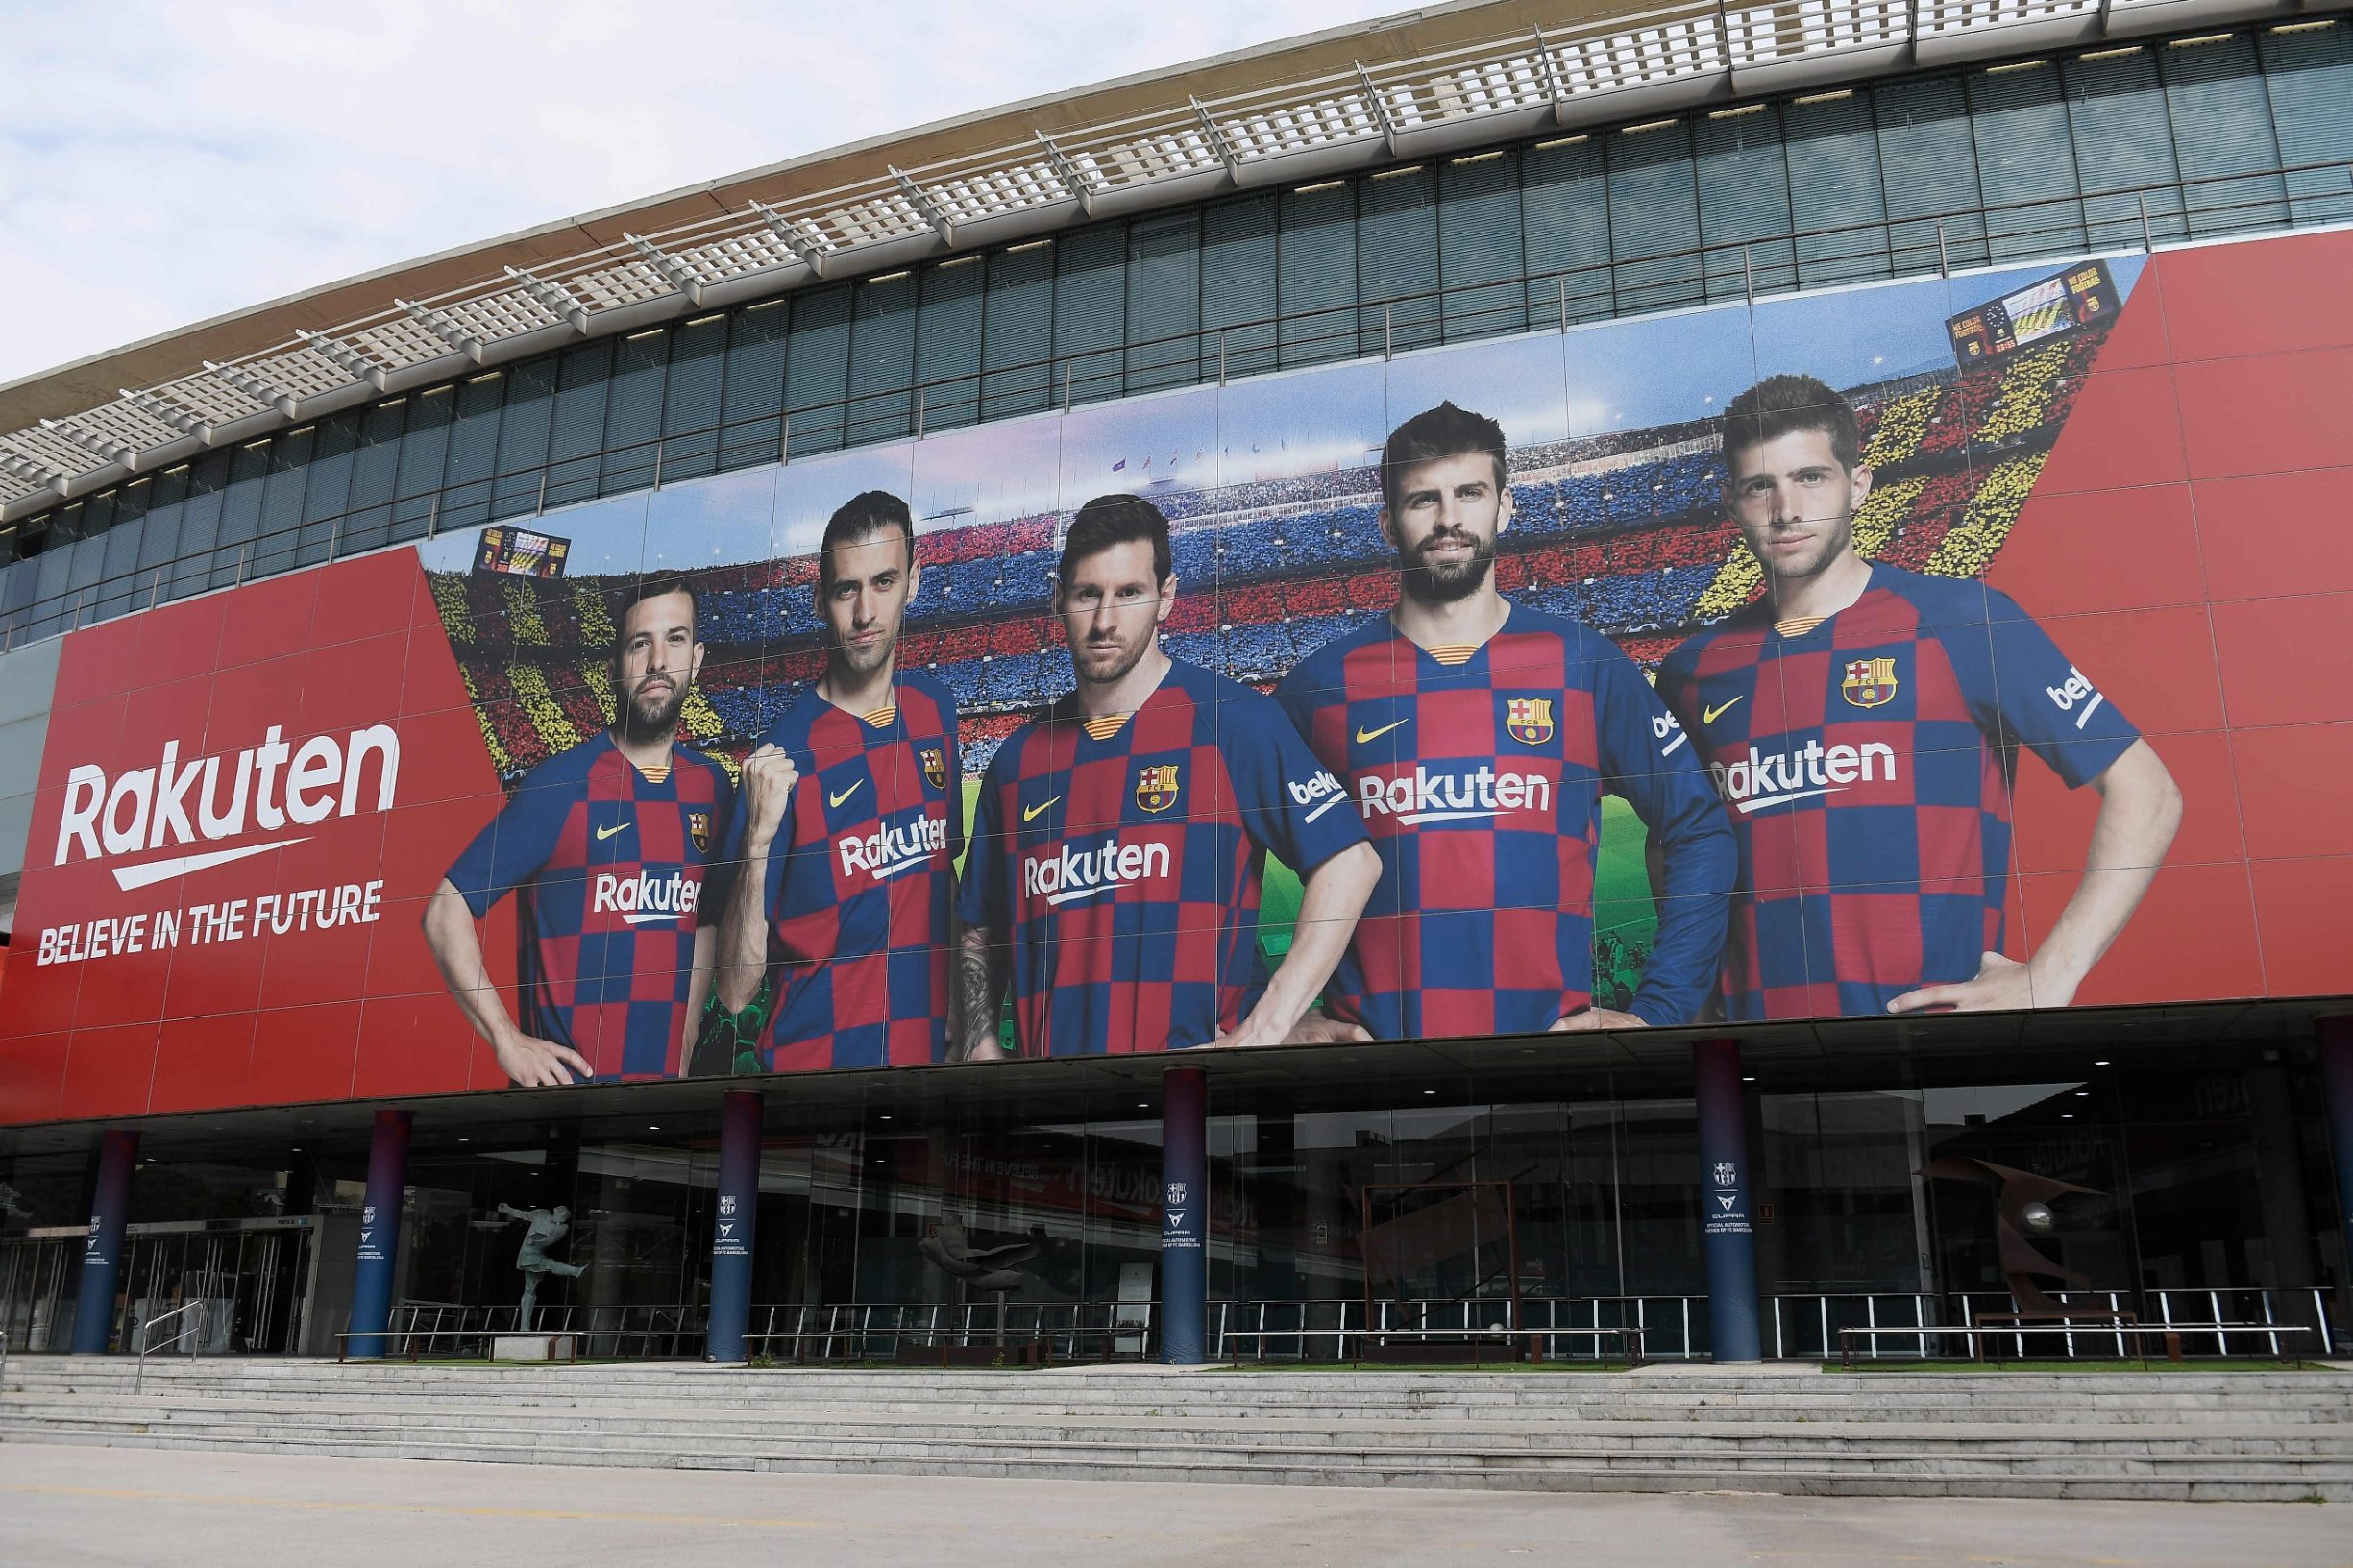 A picture shows the empty entrance to the Camp Nou stadium in Barcelona on March 13, 2020 after La Liga said Spain's top two divisions would be suspended for at least two weeks over the coronavirus outbreak. (Photo by Josep LAGO / AFP)